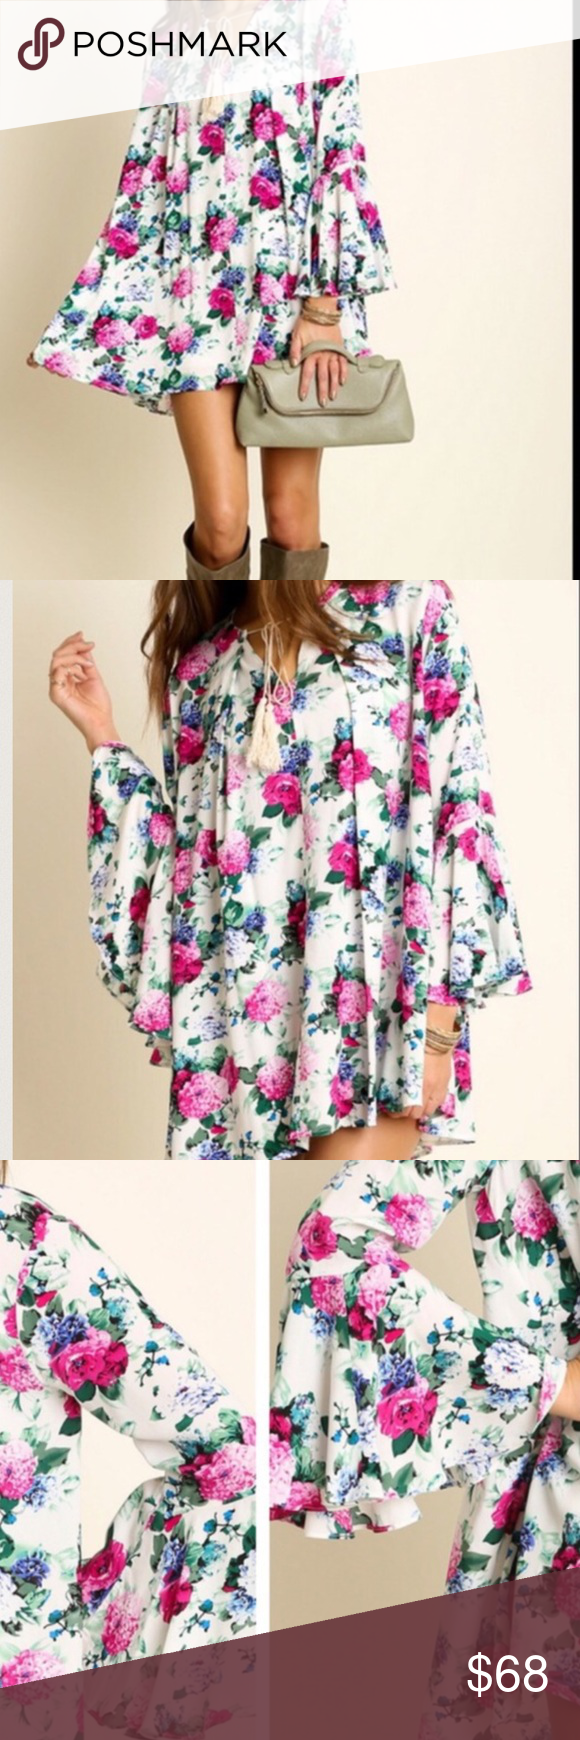 """Floral Rope Swing Dress NWT Sizing: Size S: Bust 35-36"""" Waist 27-28"""" Hips 36-37"""" Size M: Bust 37-38"""" Waist 29-30"""" Hips 38-39"""" Size L: Bust 39-40"""" Waist 31-32"""" Hips 40-41"""" Fabulous quality swing dress! Love love LOVE this flirty and feminine style!  Fuchsia floral print with front rope tie neck closure. Bell sleeves. Oversized fit. Color is CREAM MIX.  Semi Pleated Maxi Tunic Dress.  Pastel Lace Visit us at our Facebook Shop! https://www.facebook.com/BohoLocoFashionBoutique/ Fashion Boho Loco…"""